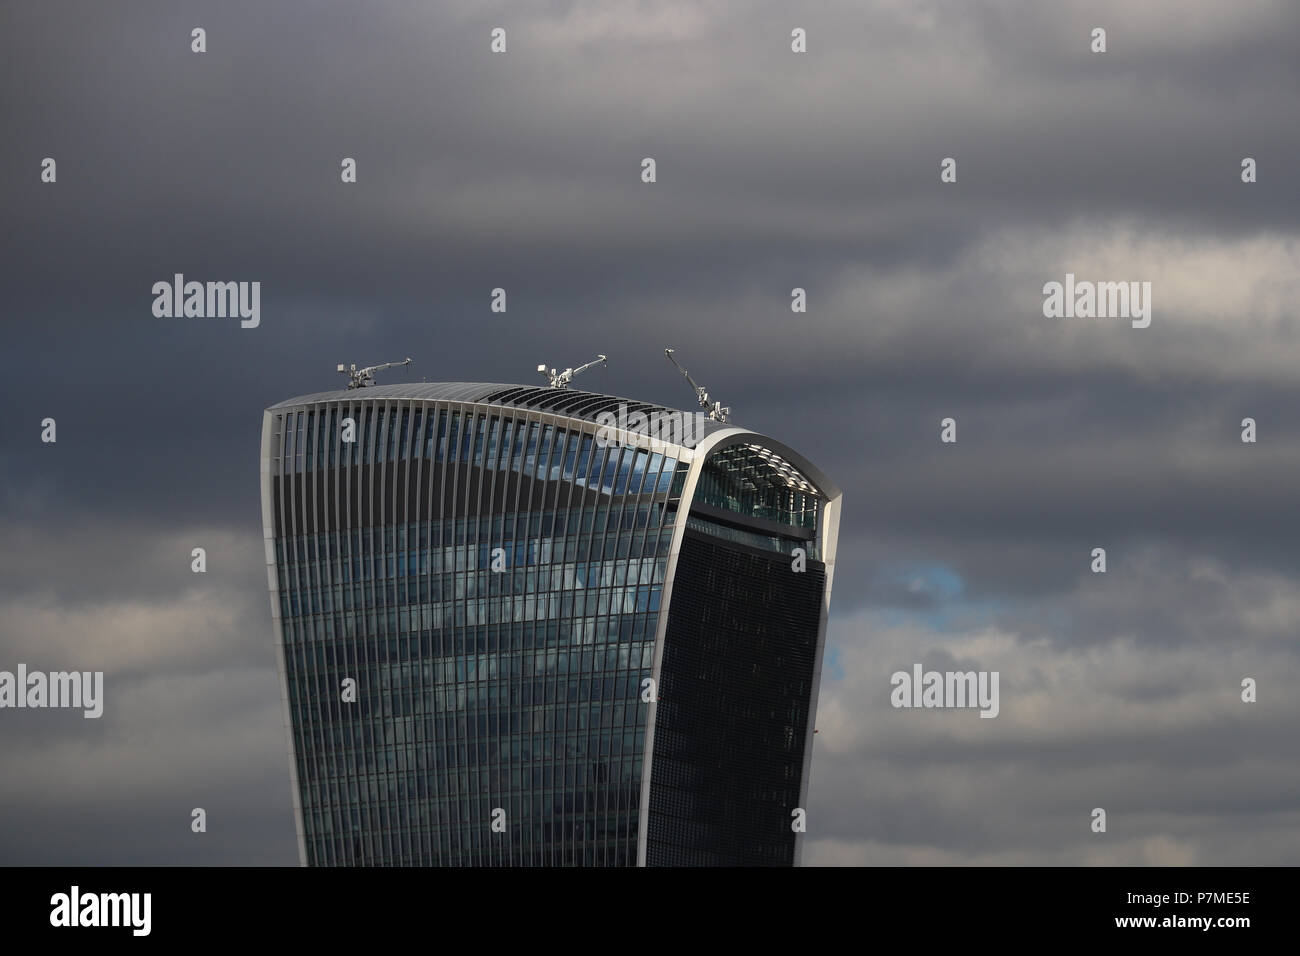 The new high-rise located at 20 Fenchurch St., London, is called the Walkie Talkie because of its unusual concave shape, like an old mobile phone. - Stock Image